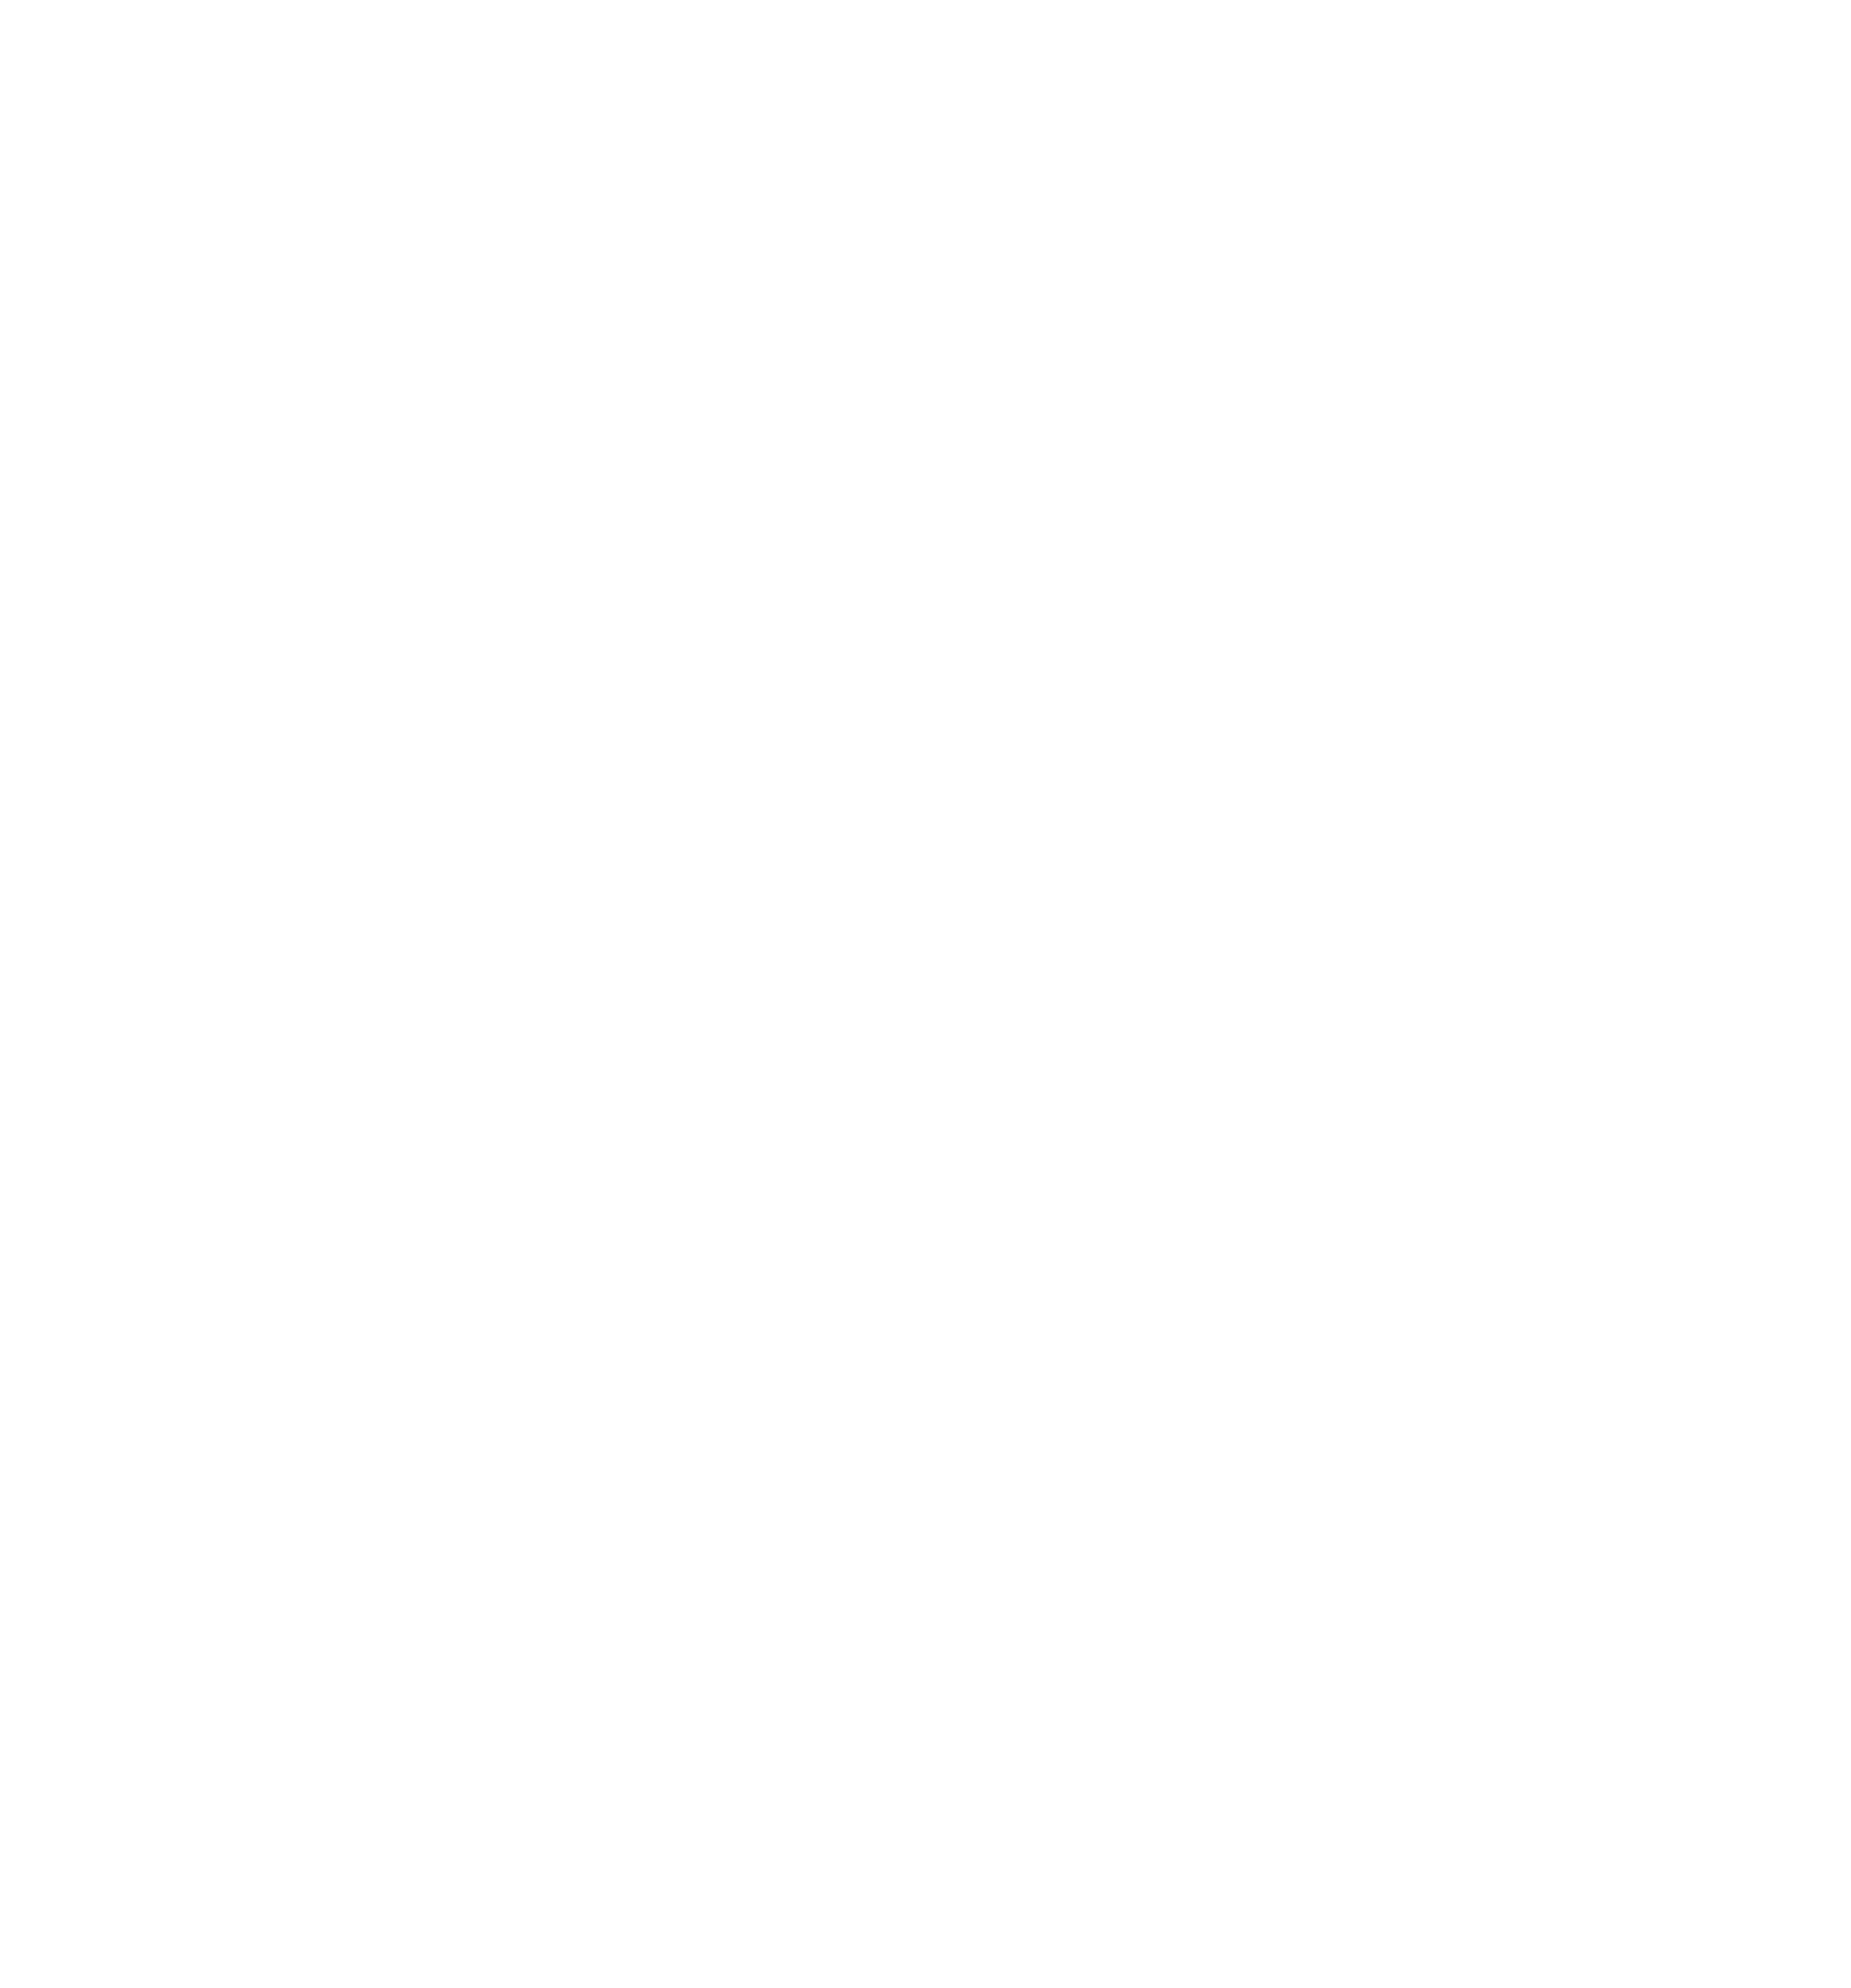 Leave A Mark Consulting Group